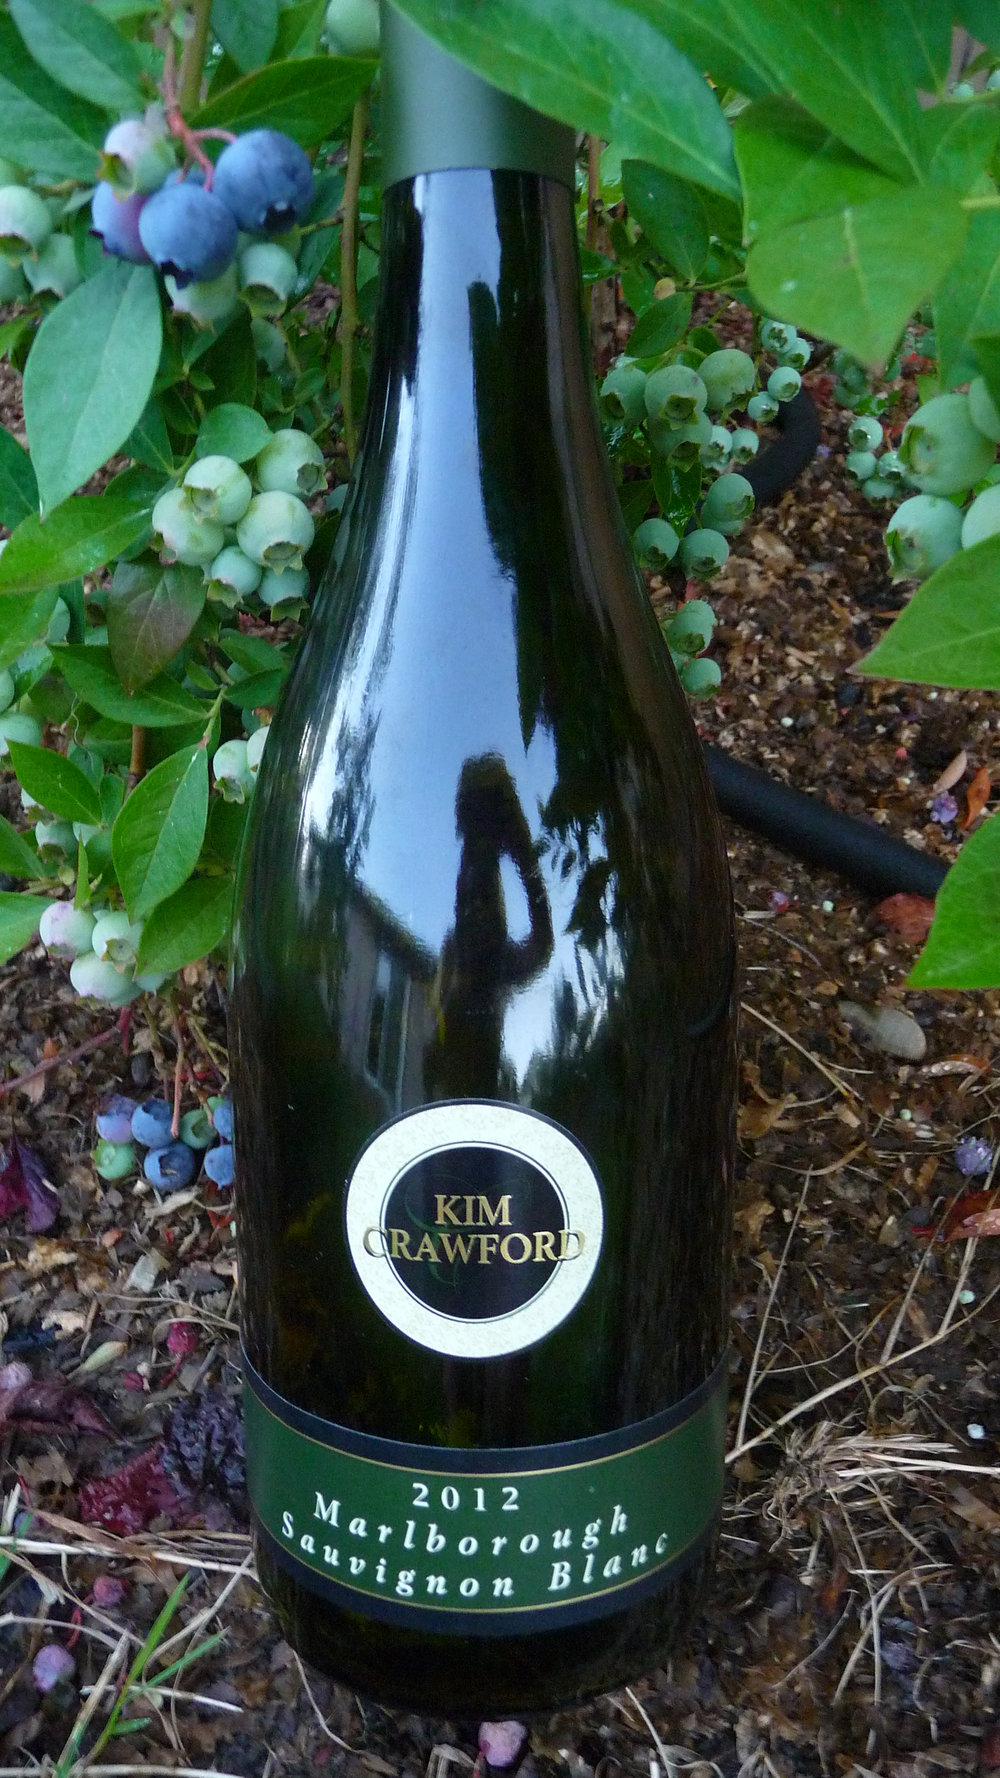 The 2012 Kim Crawford Sauvignon Blanc is luscious and refreshing with tropical fruit notes.